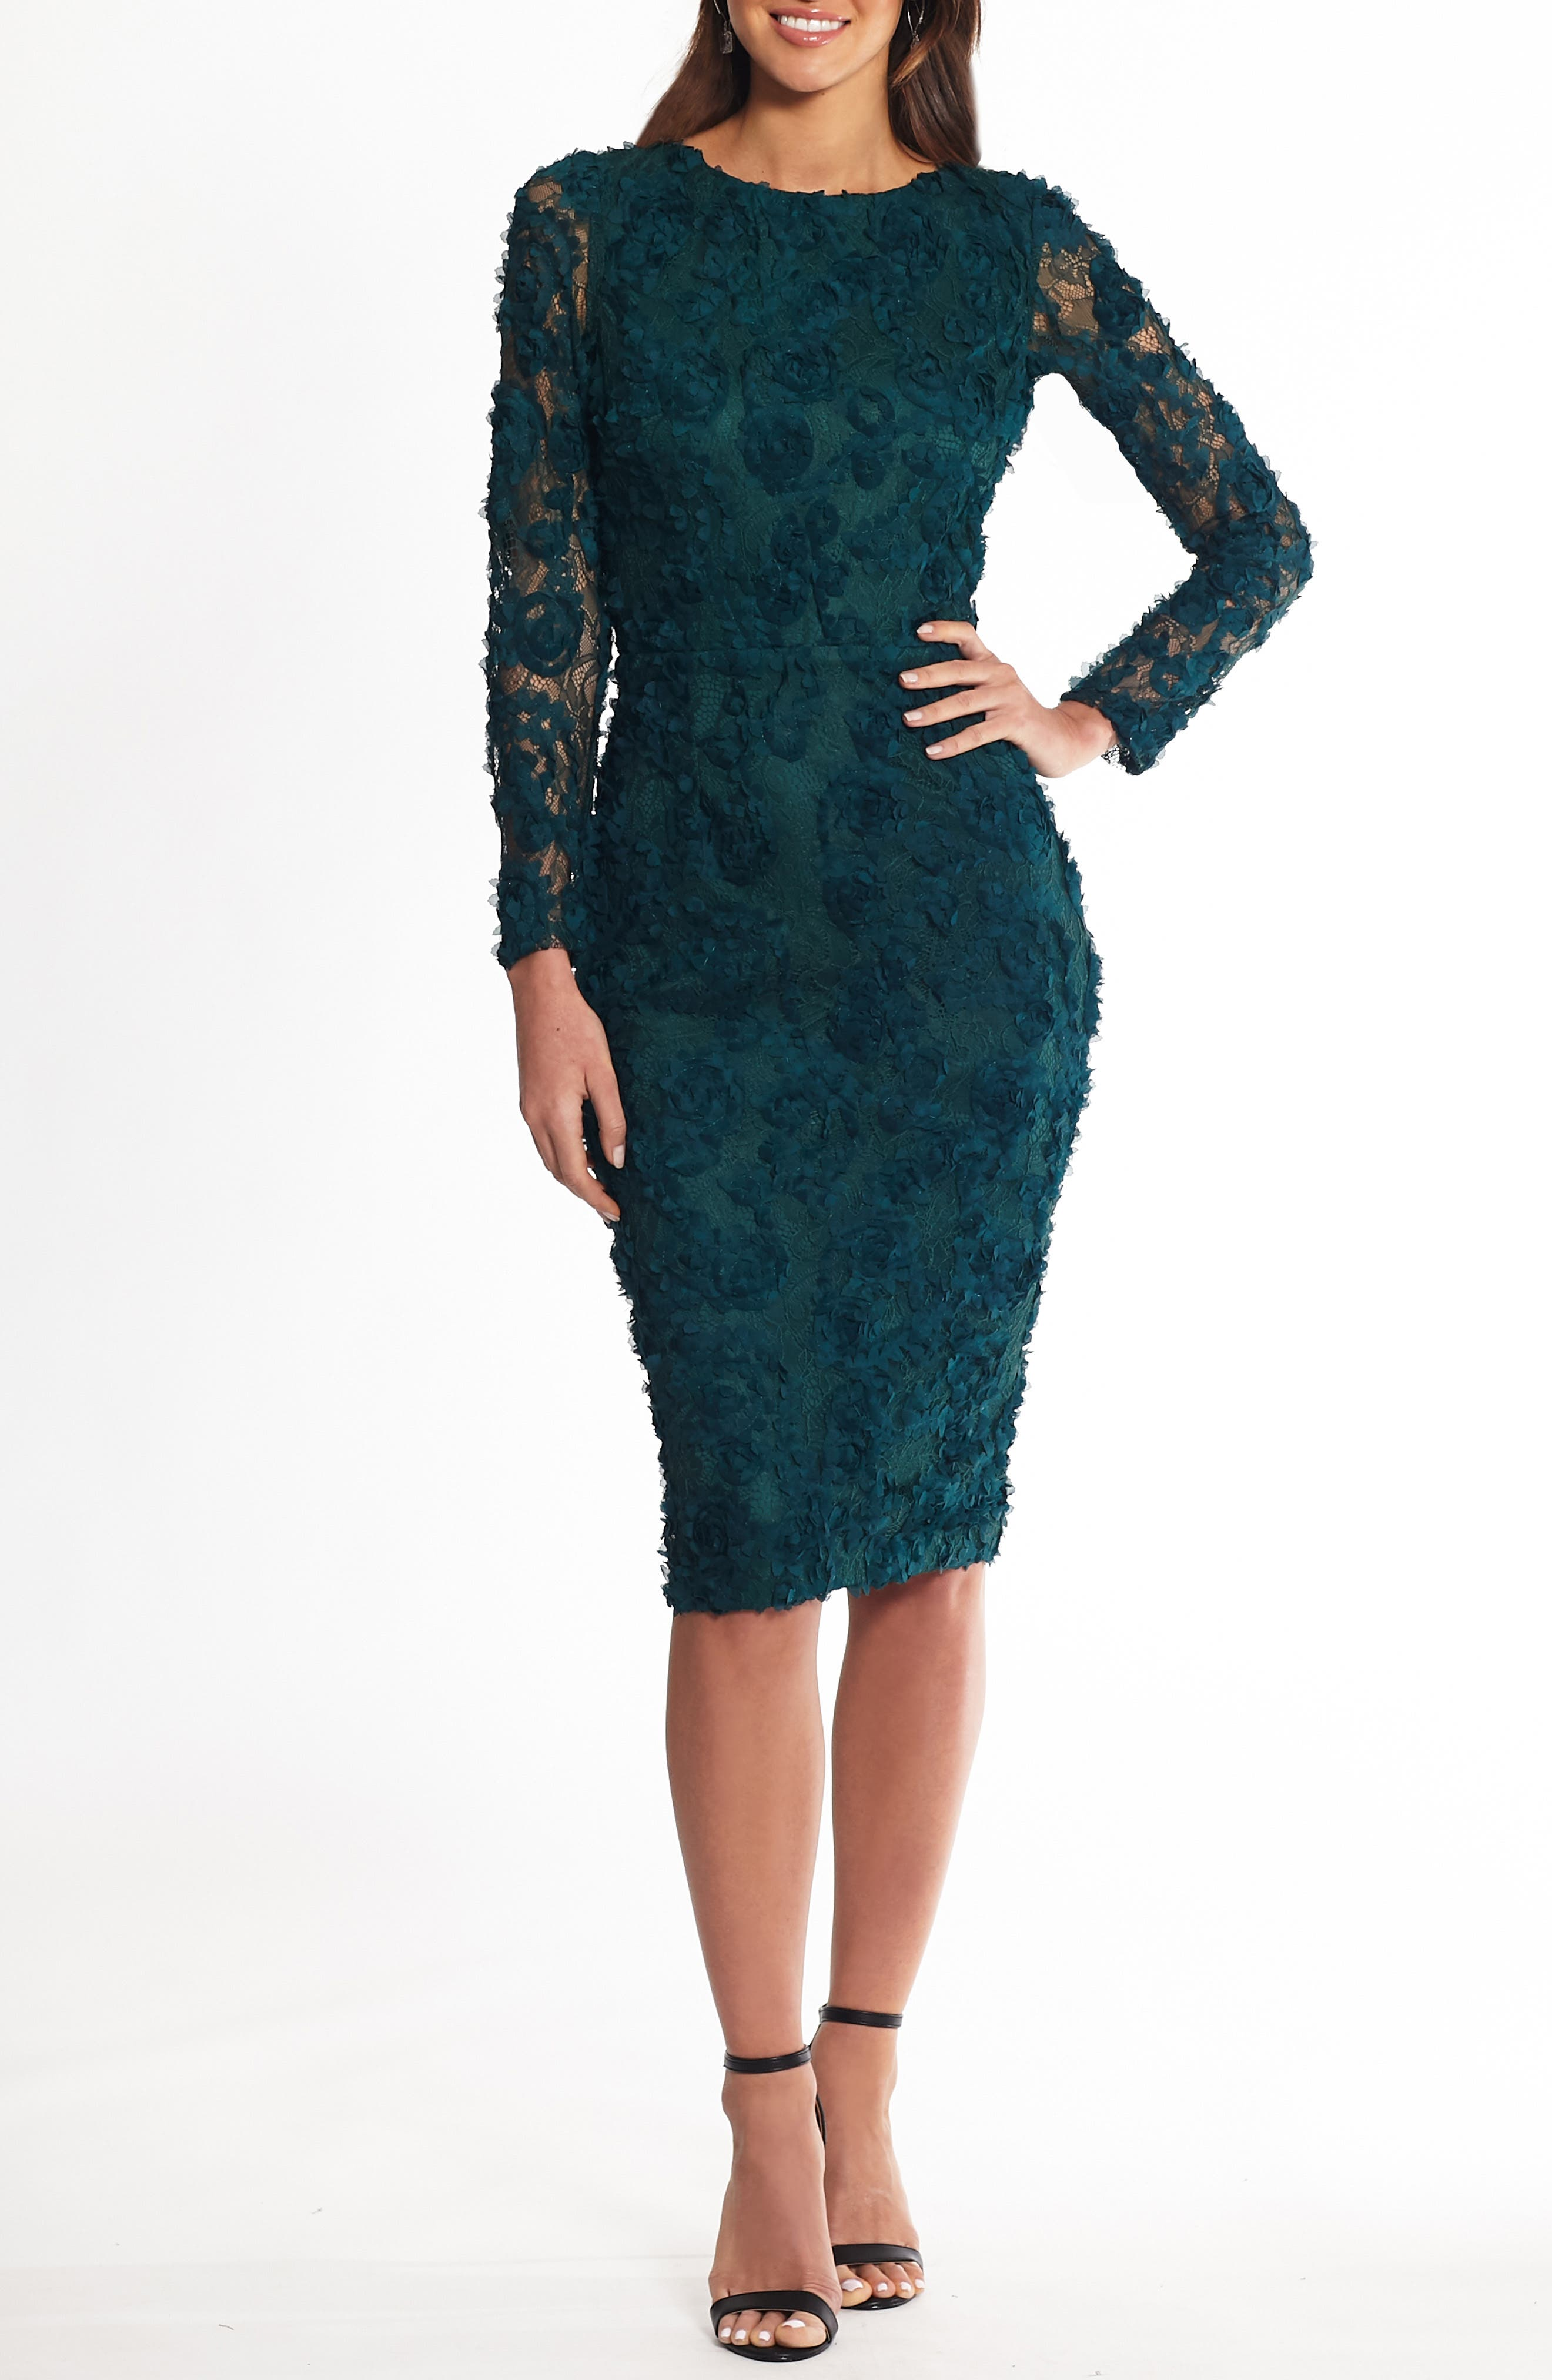 A luxe lace backdrop covered in fluttery details provides an air of sweet sophistication in a dress that\\\'s designed to impress at your next festive fete. Style Name: Xscape Lace Applique Long Sleeve Cocktail Dress. Style Number: 5829440. Available in stores.